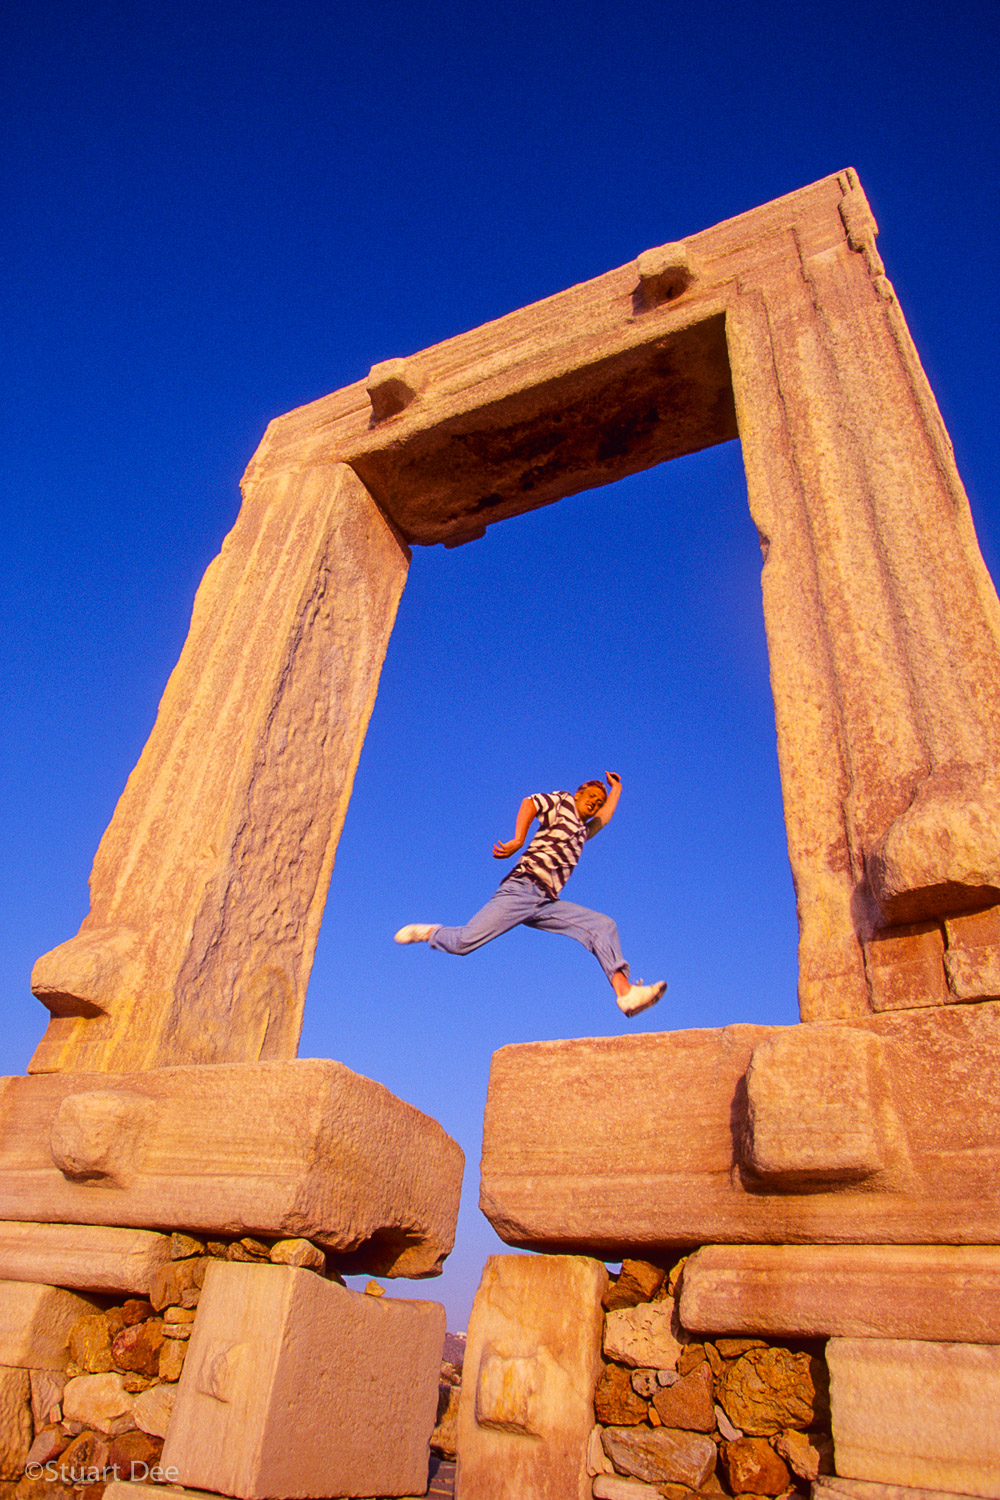 Man jumping over a gap in the marble stones of the Portara at sunset.  The symbol of Naxos, the portara is the gate of the unfinished Temple to Apollo, Naxos, Greece